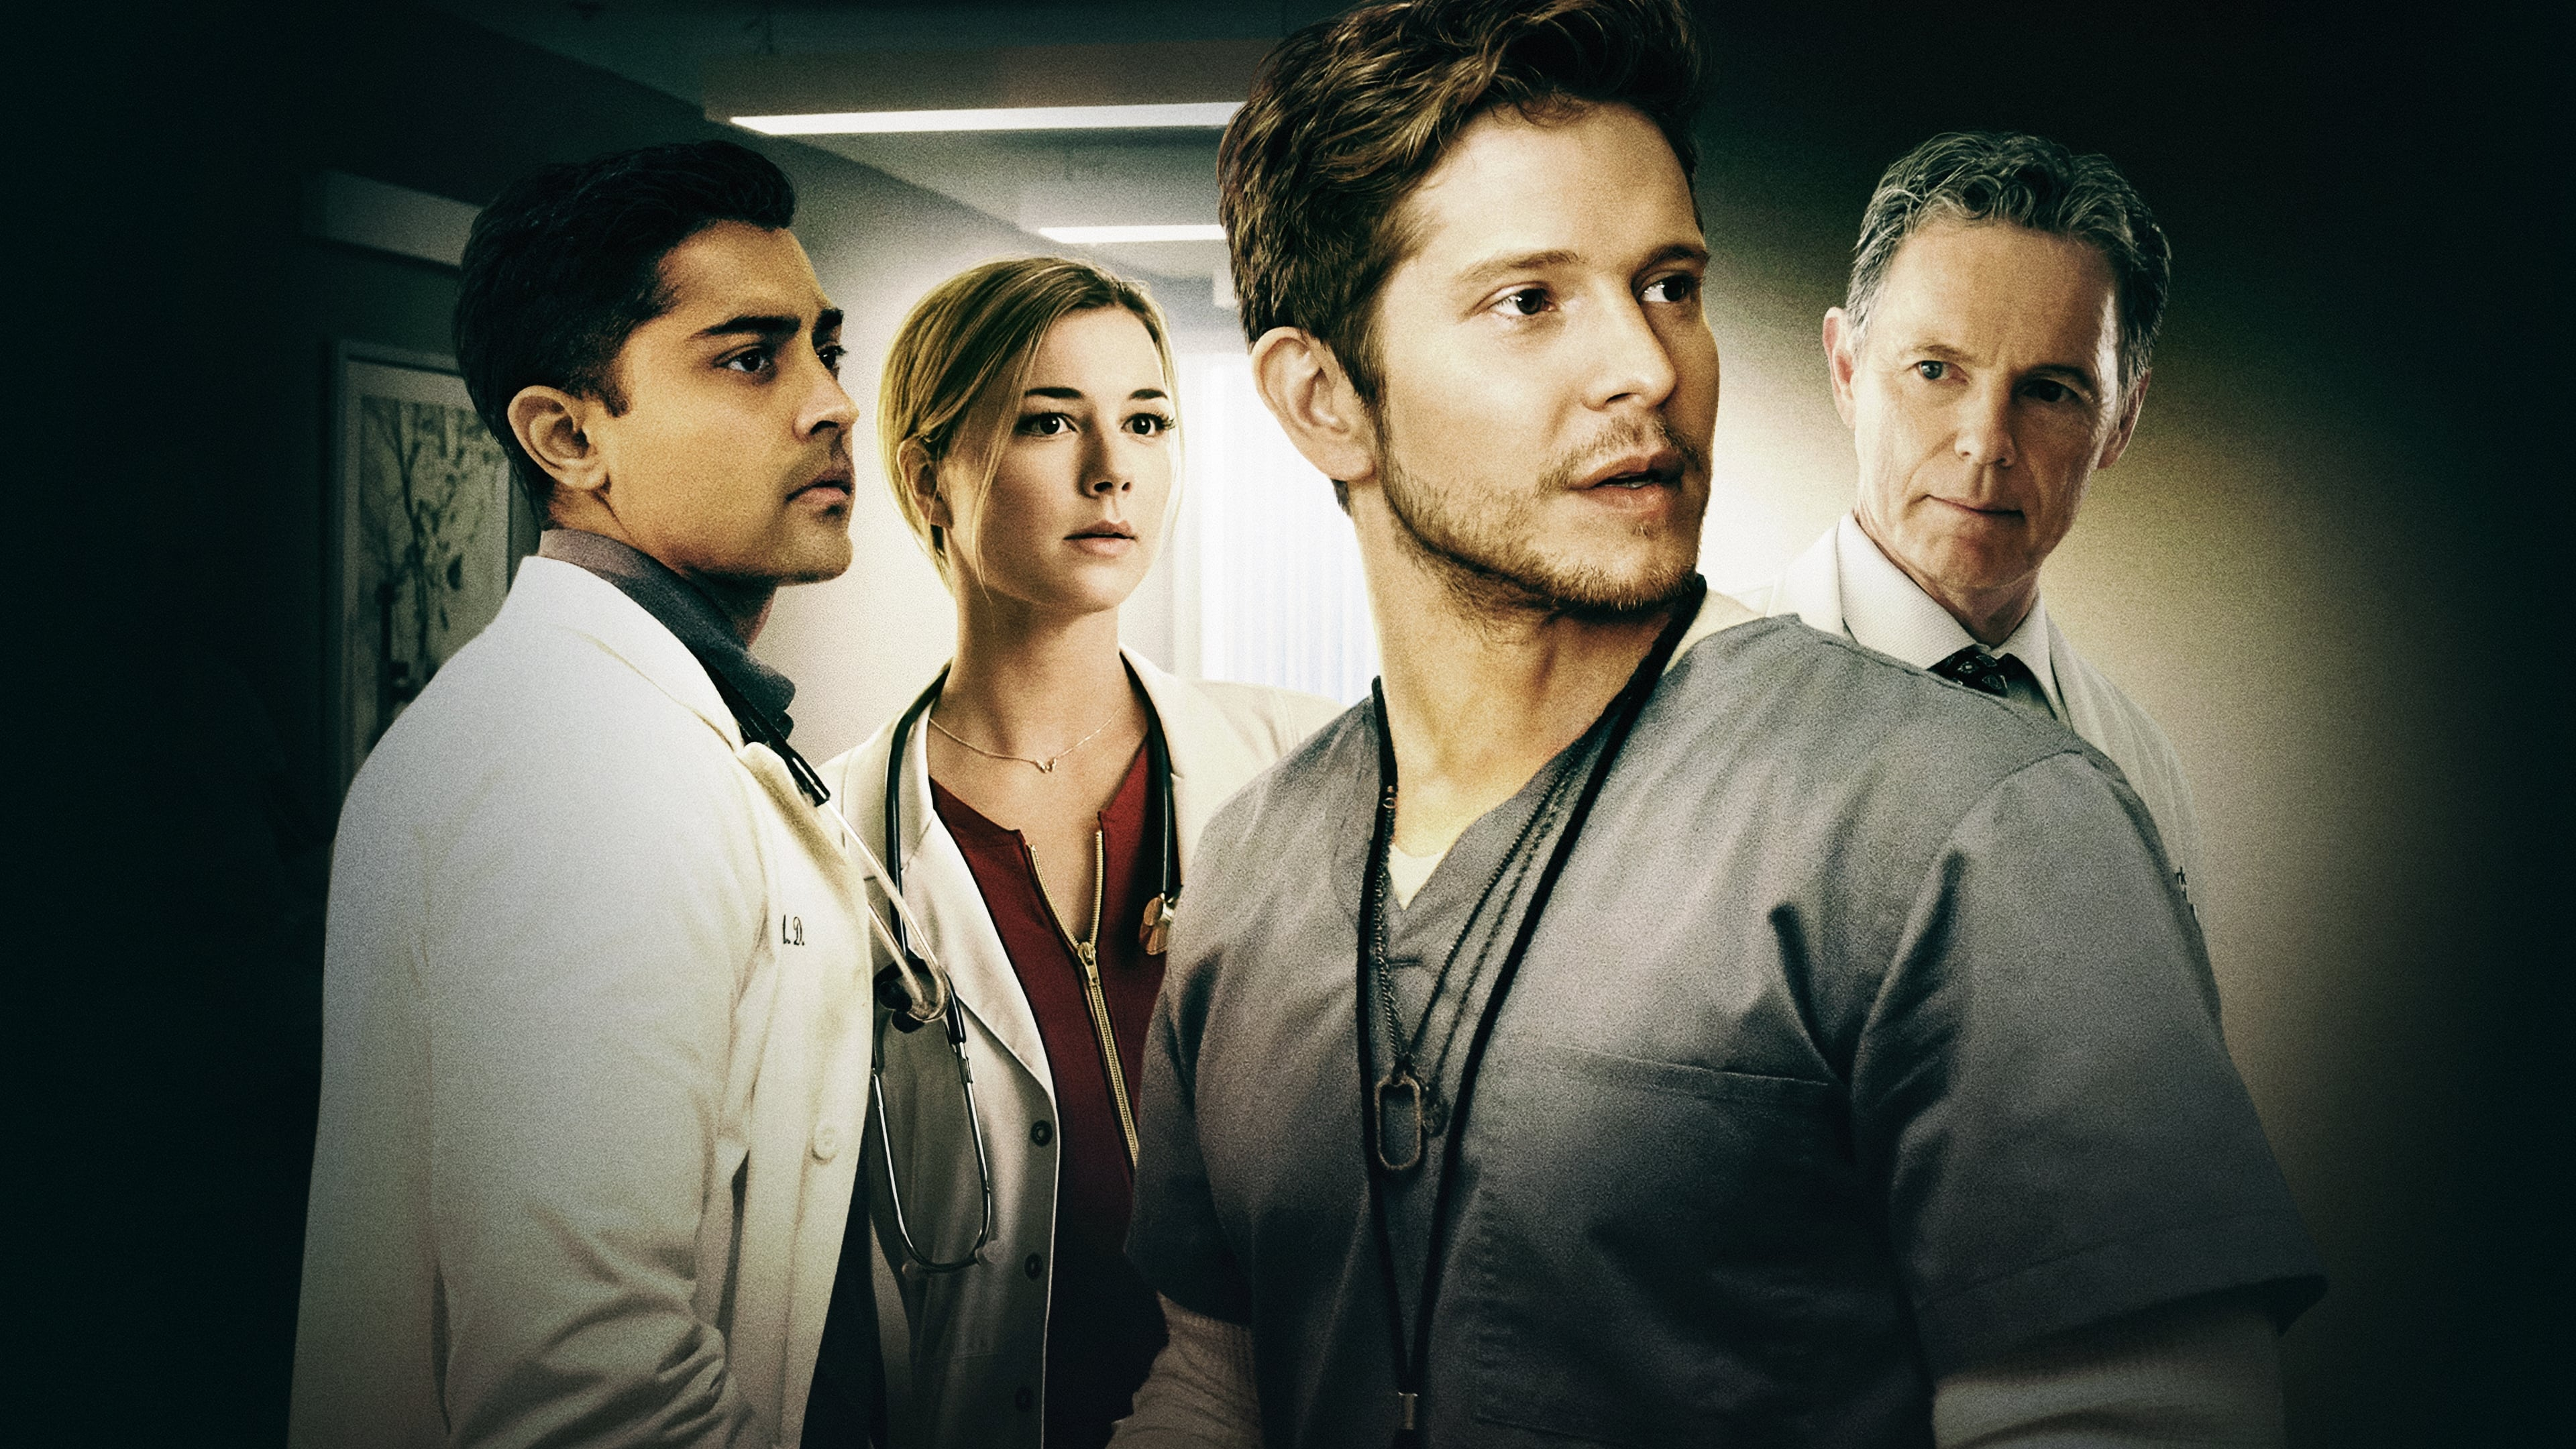 The Resident - Season the Episode resident